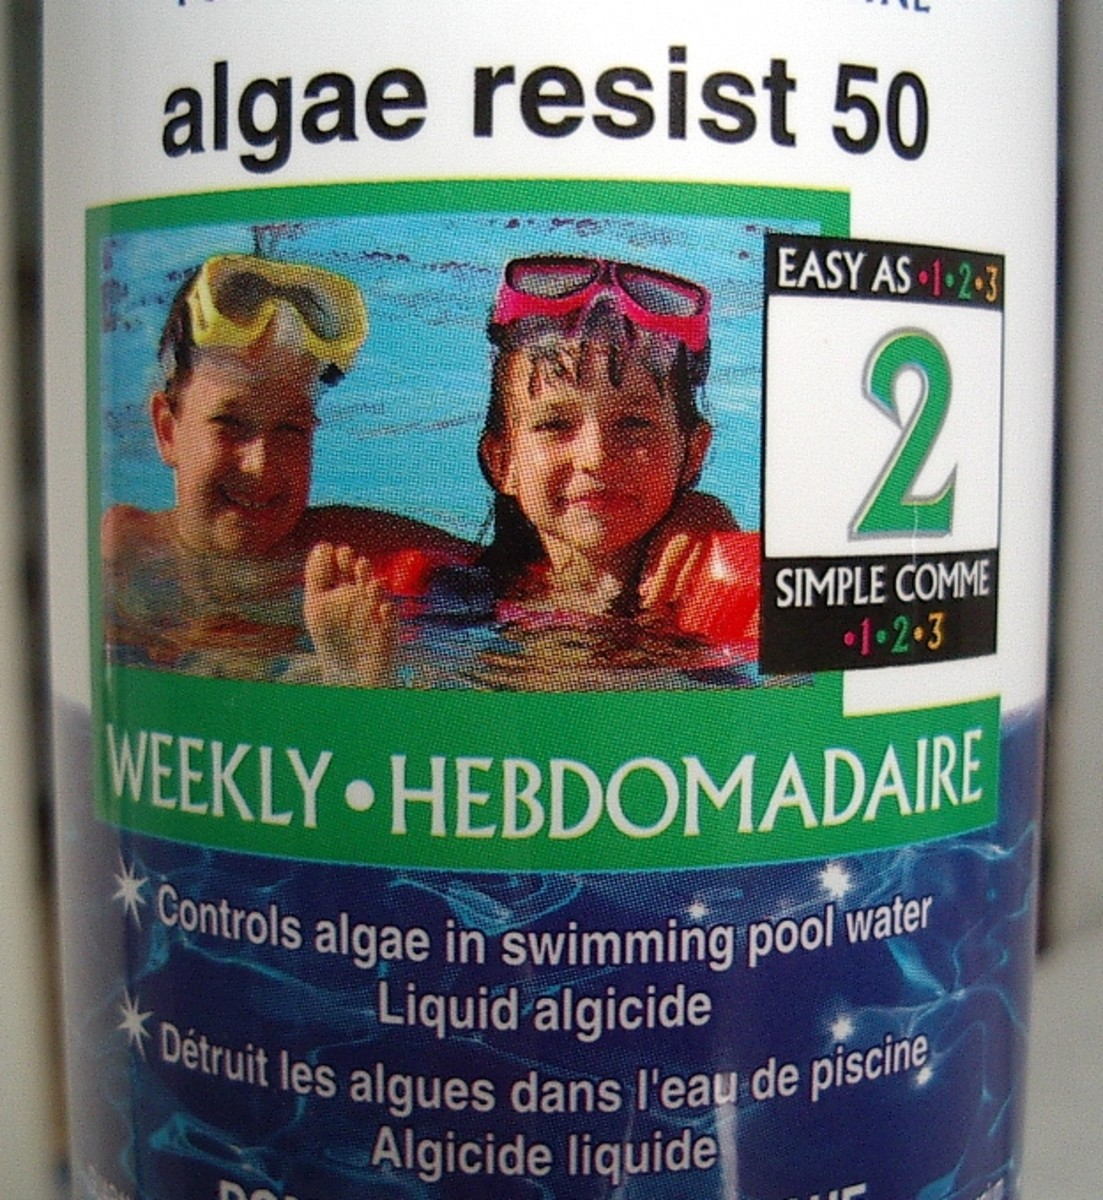 Use the algae resist if necessary